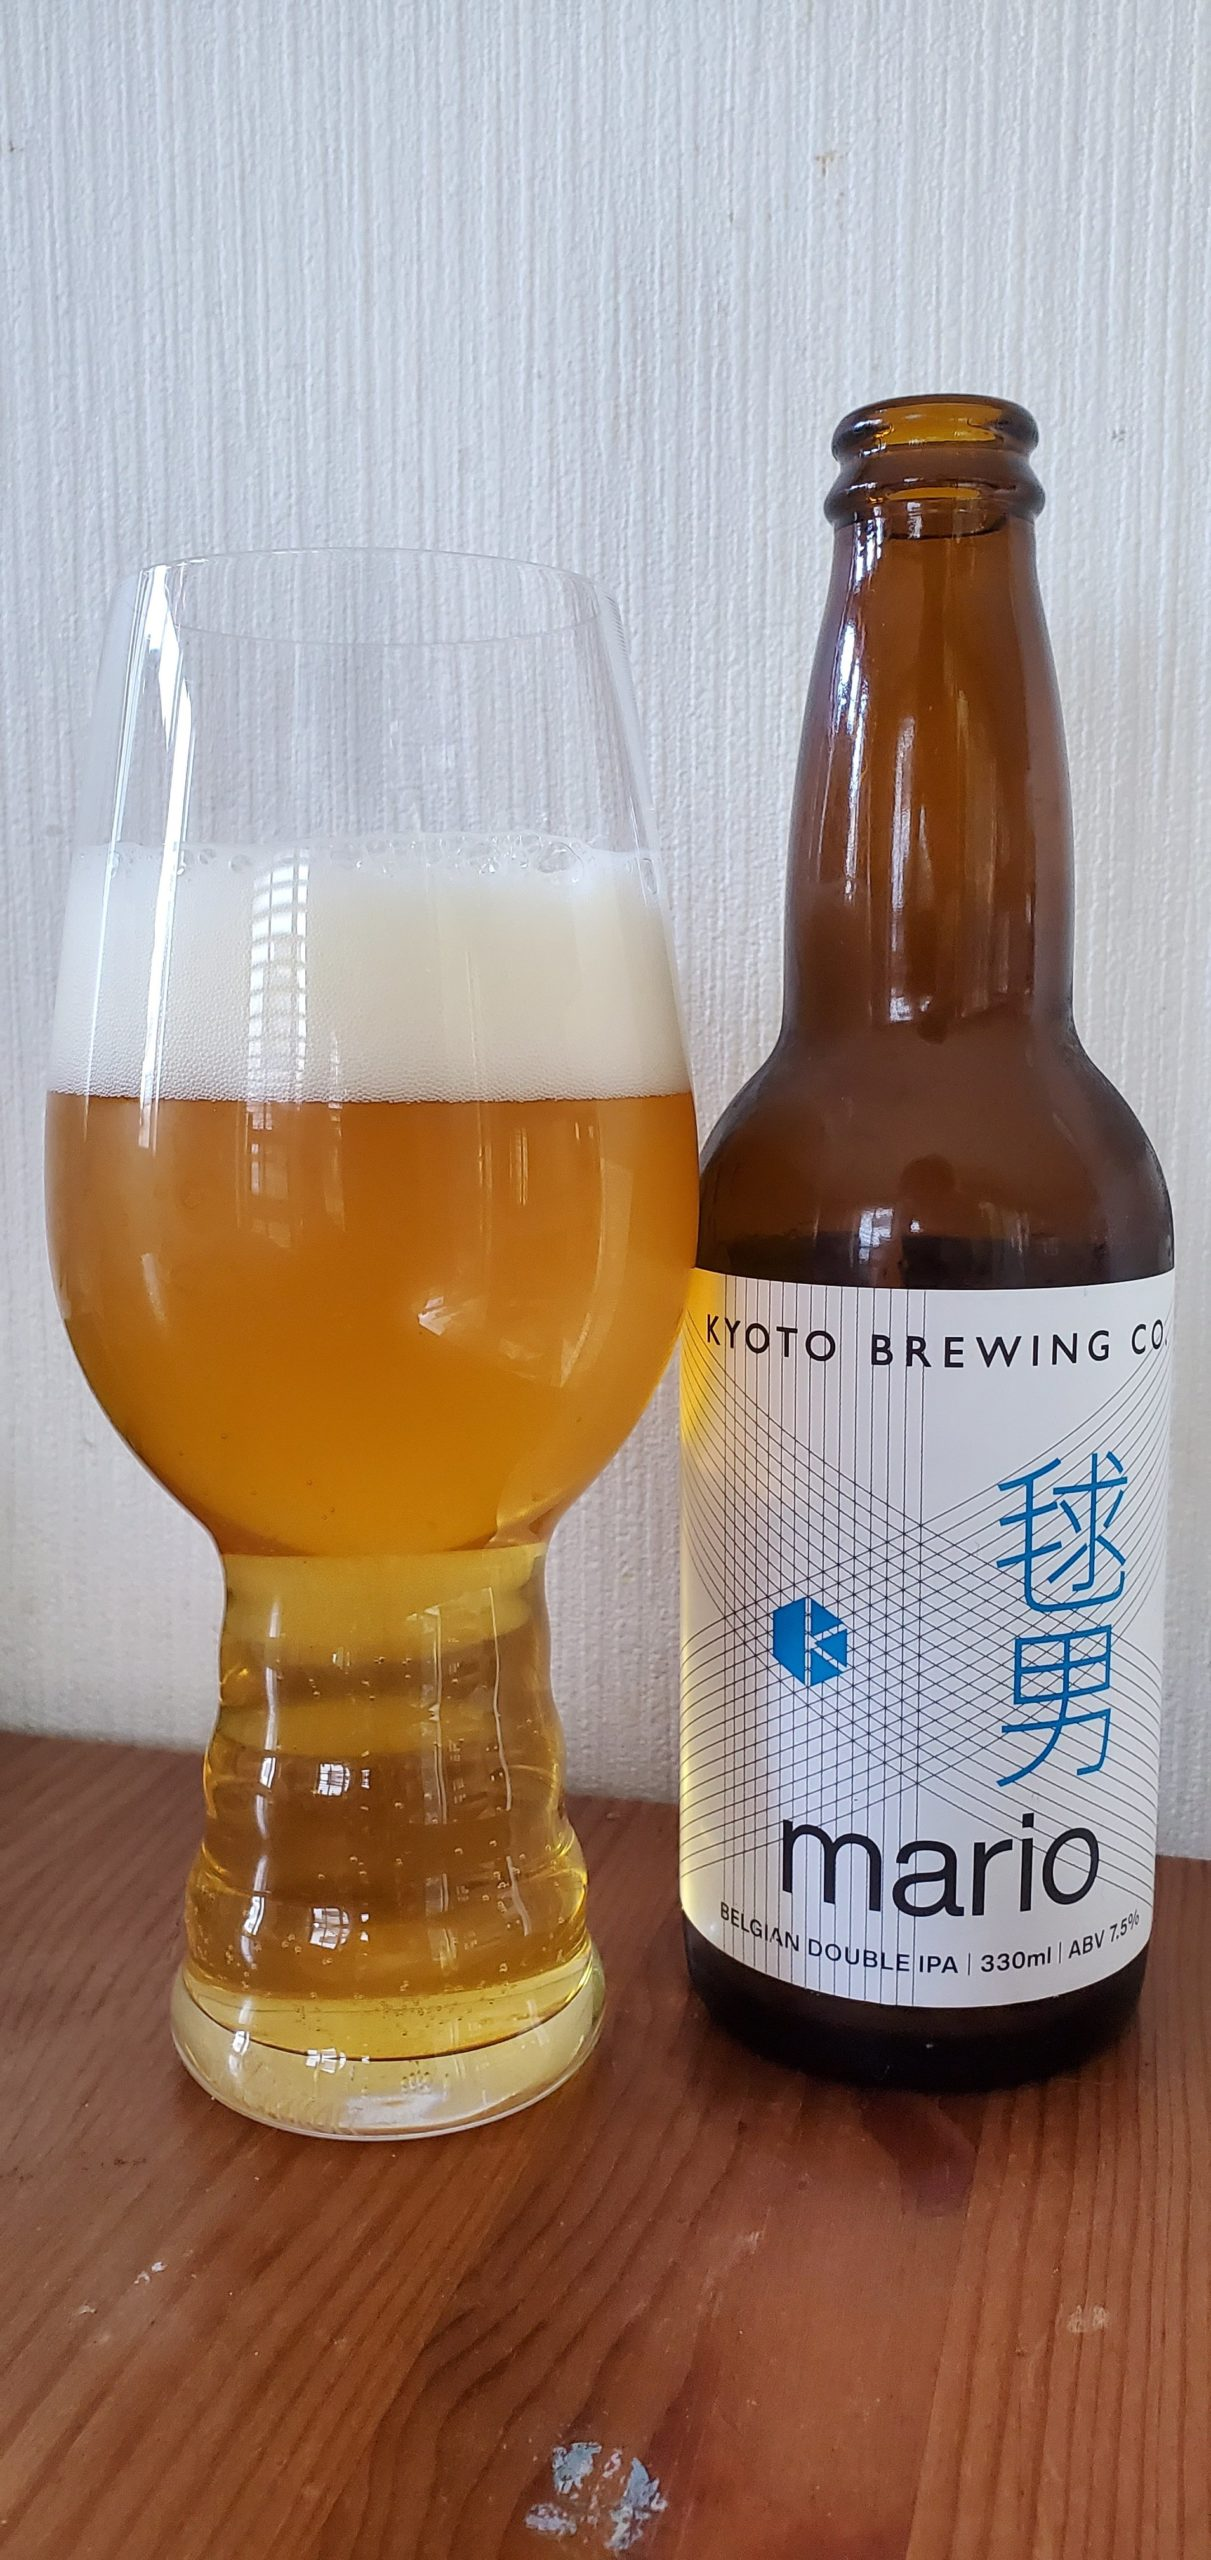 Kyoto Brewing Mario